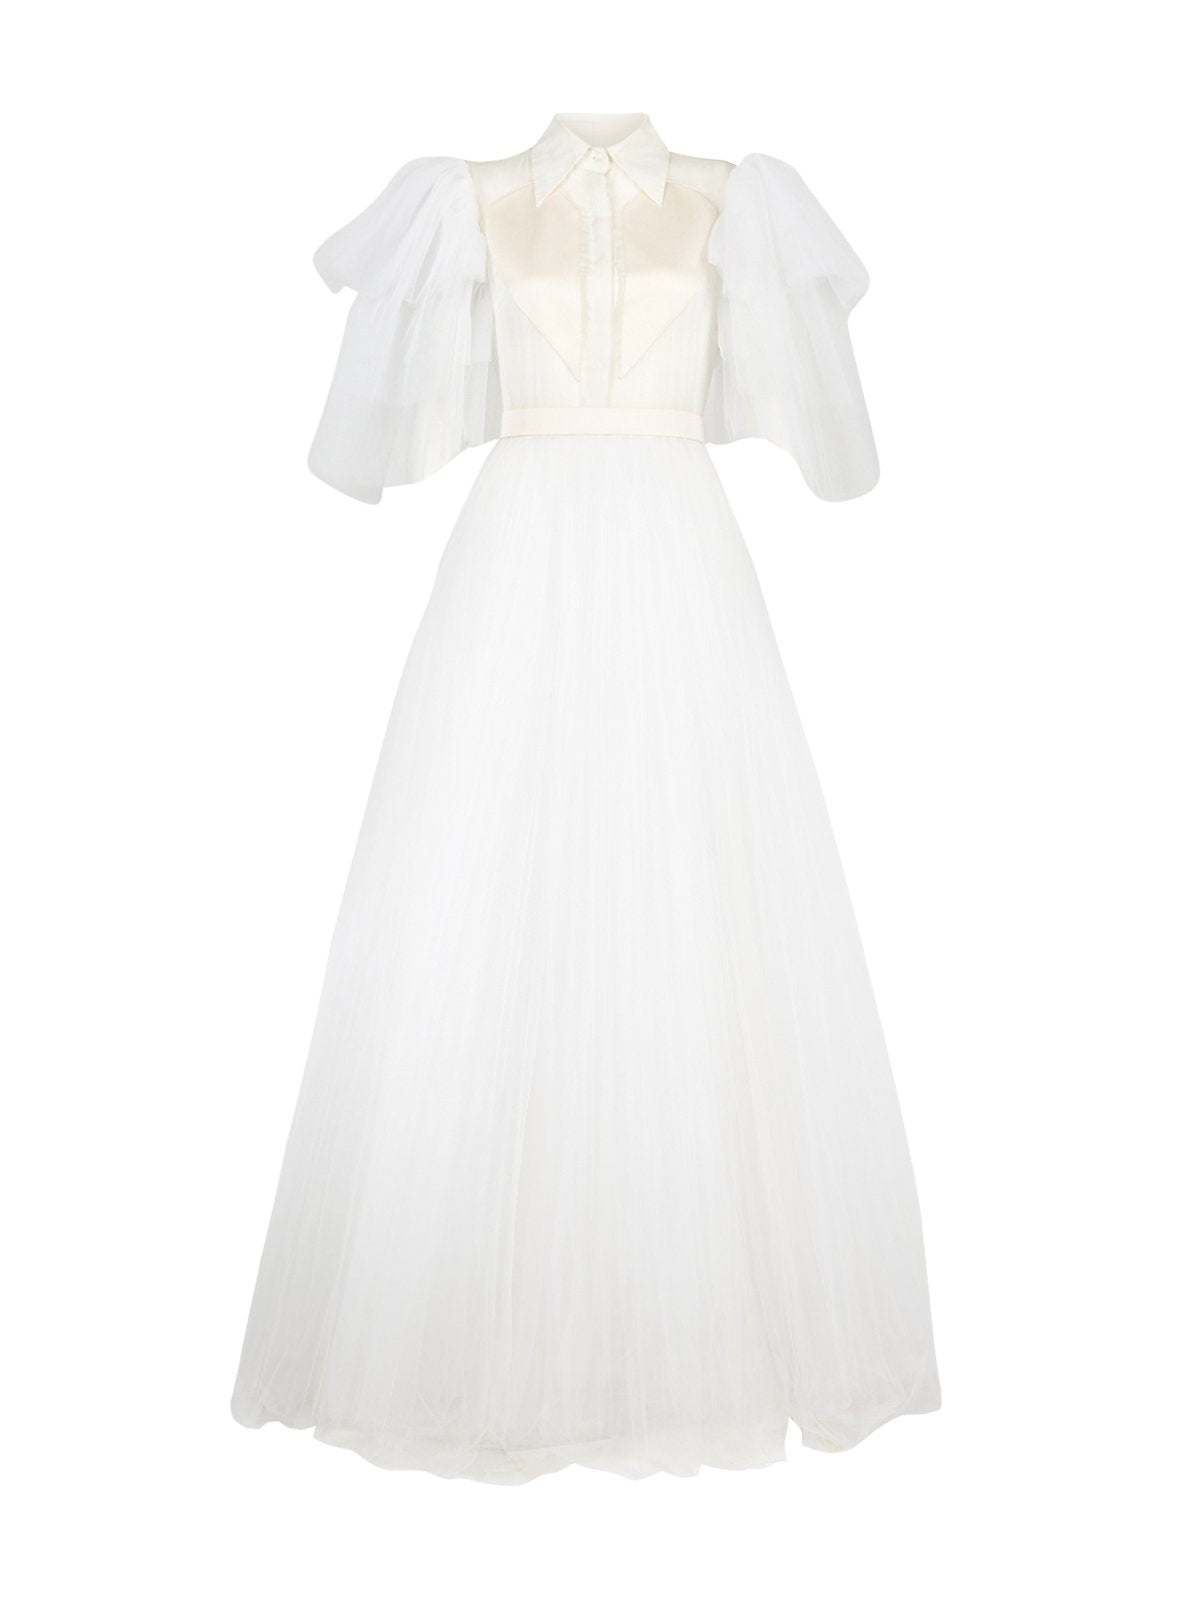 Felice wedding dress in white